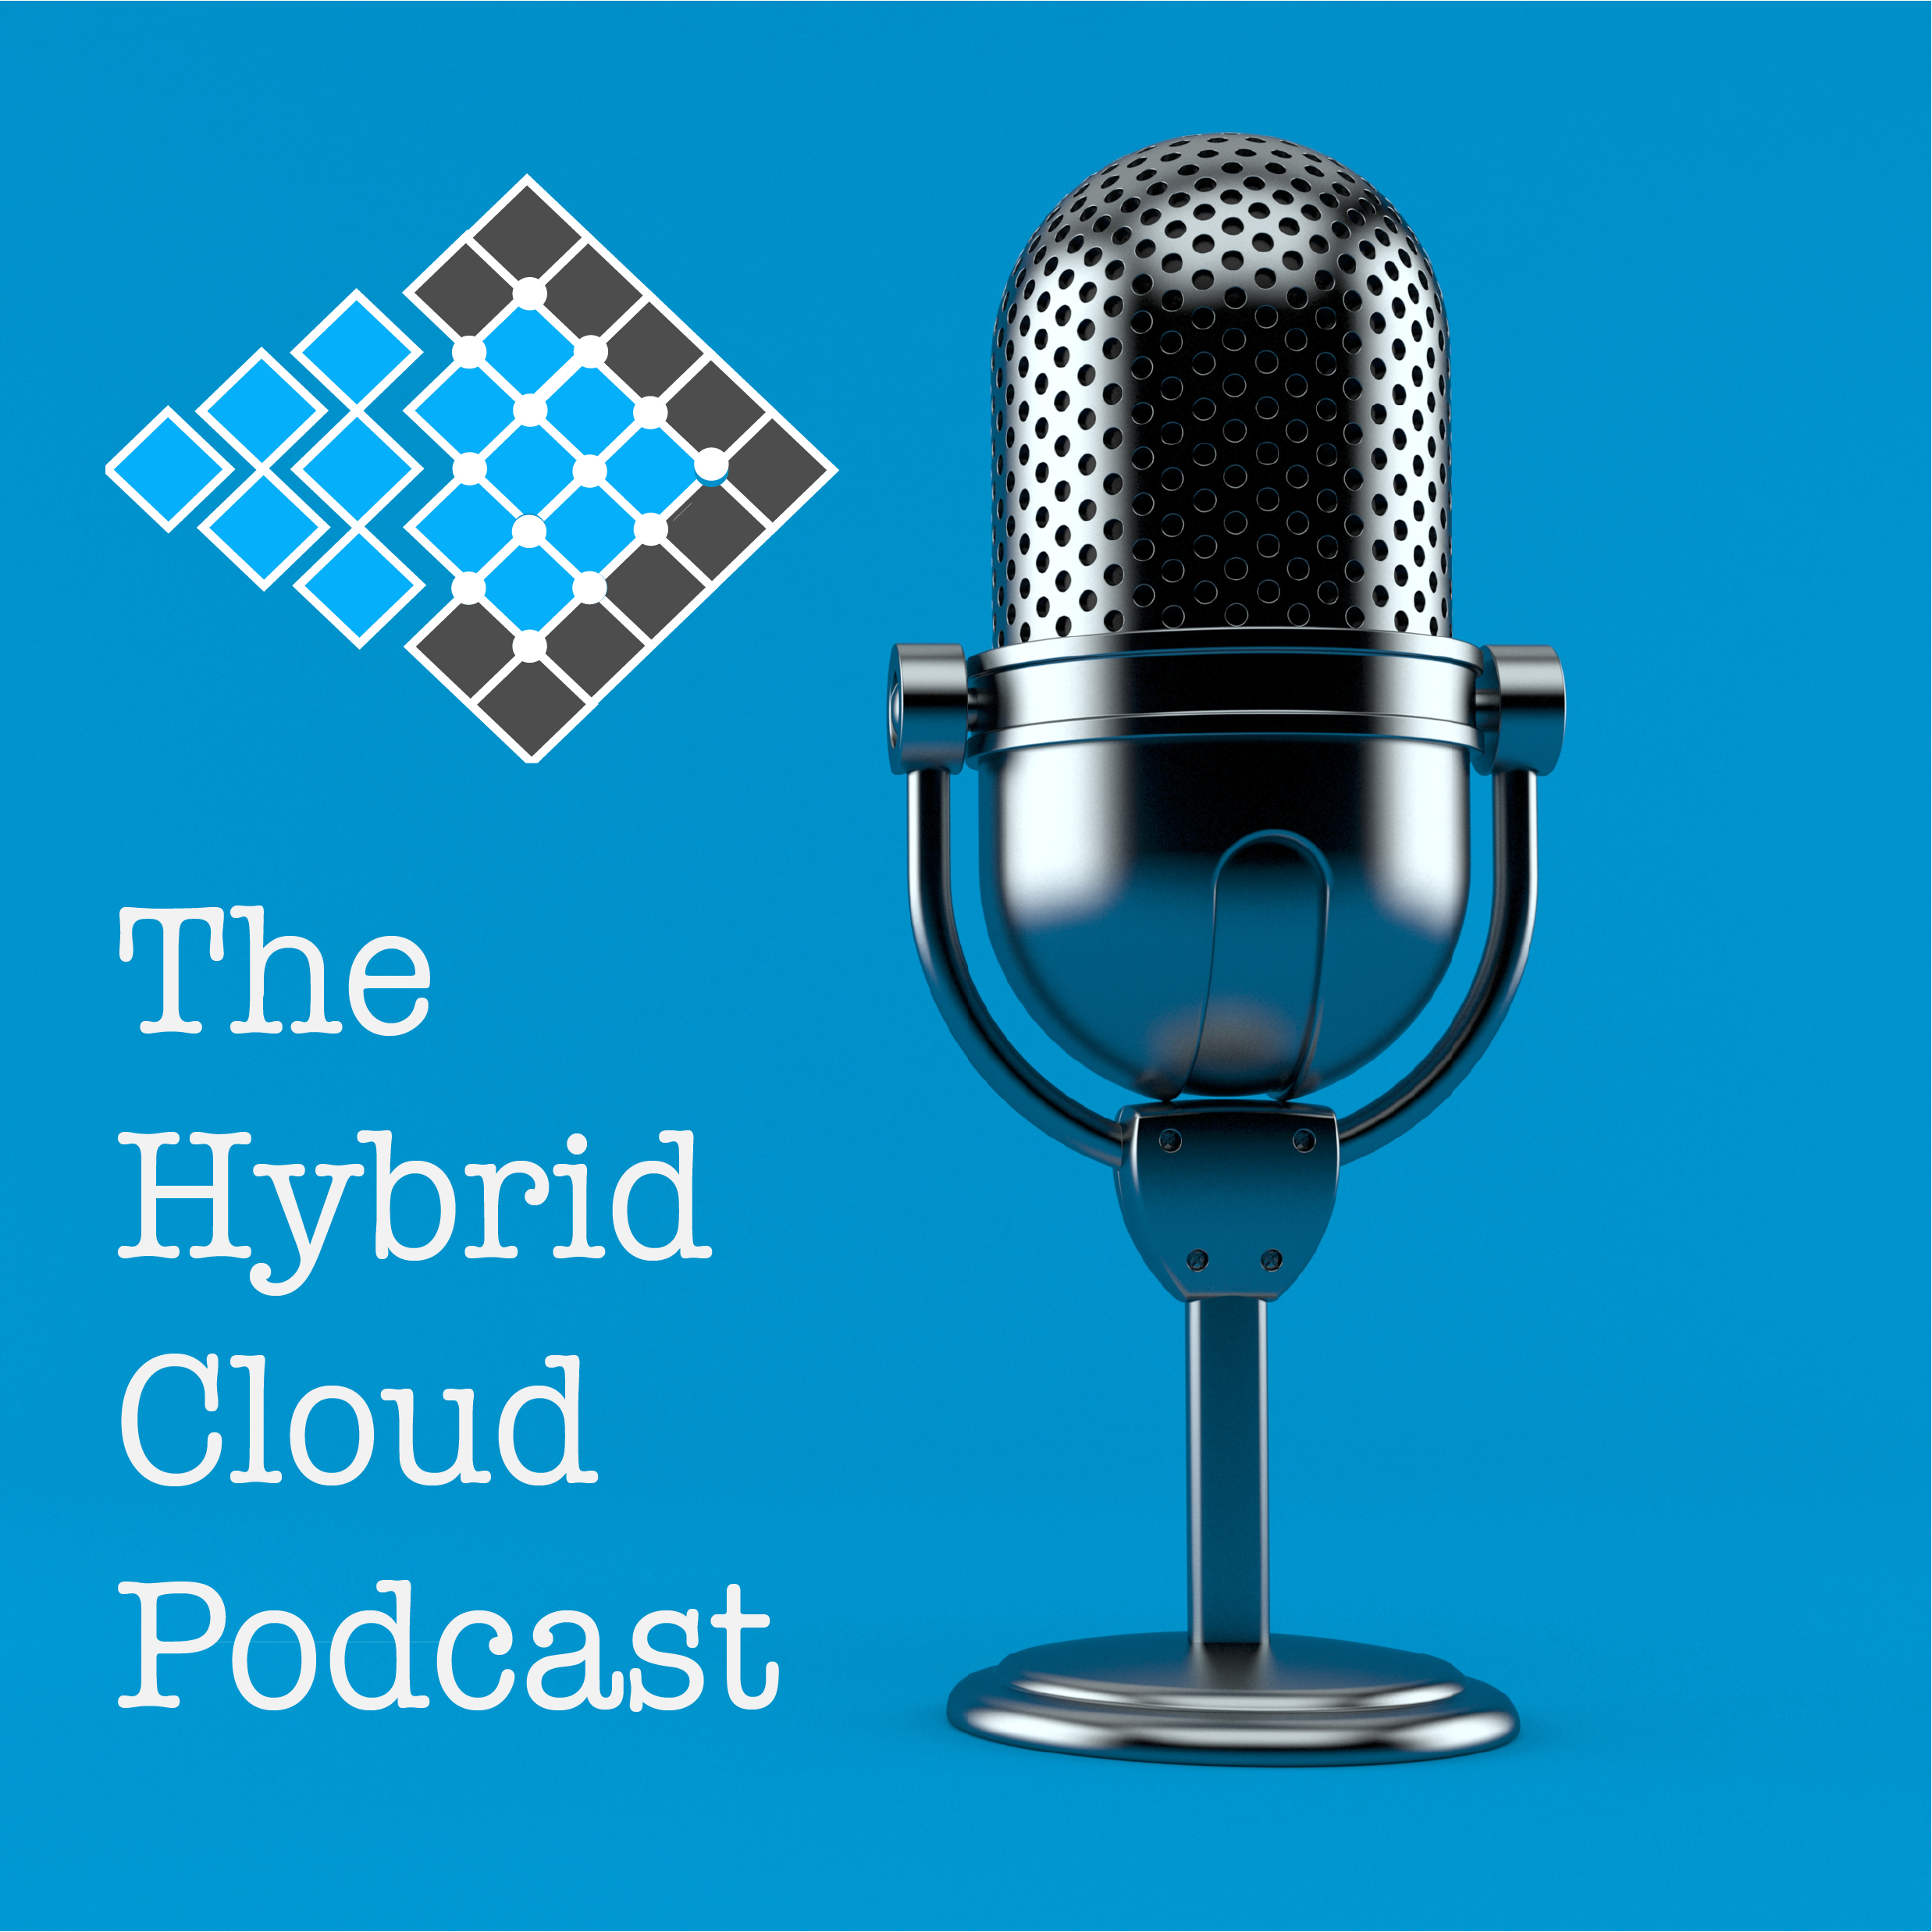 The Hybrid Cloud Podcast